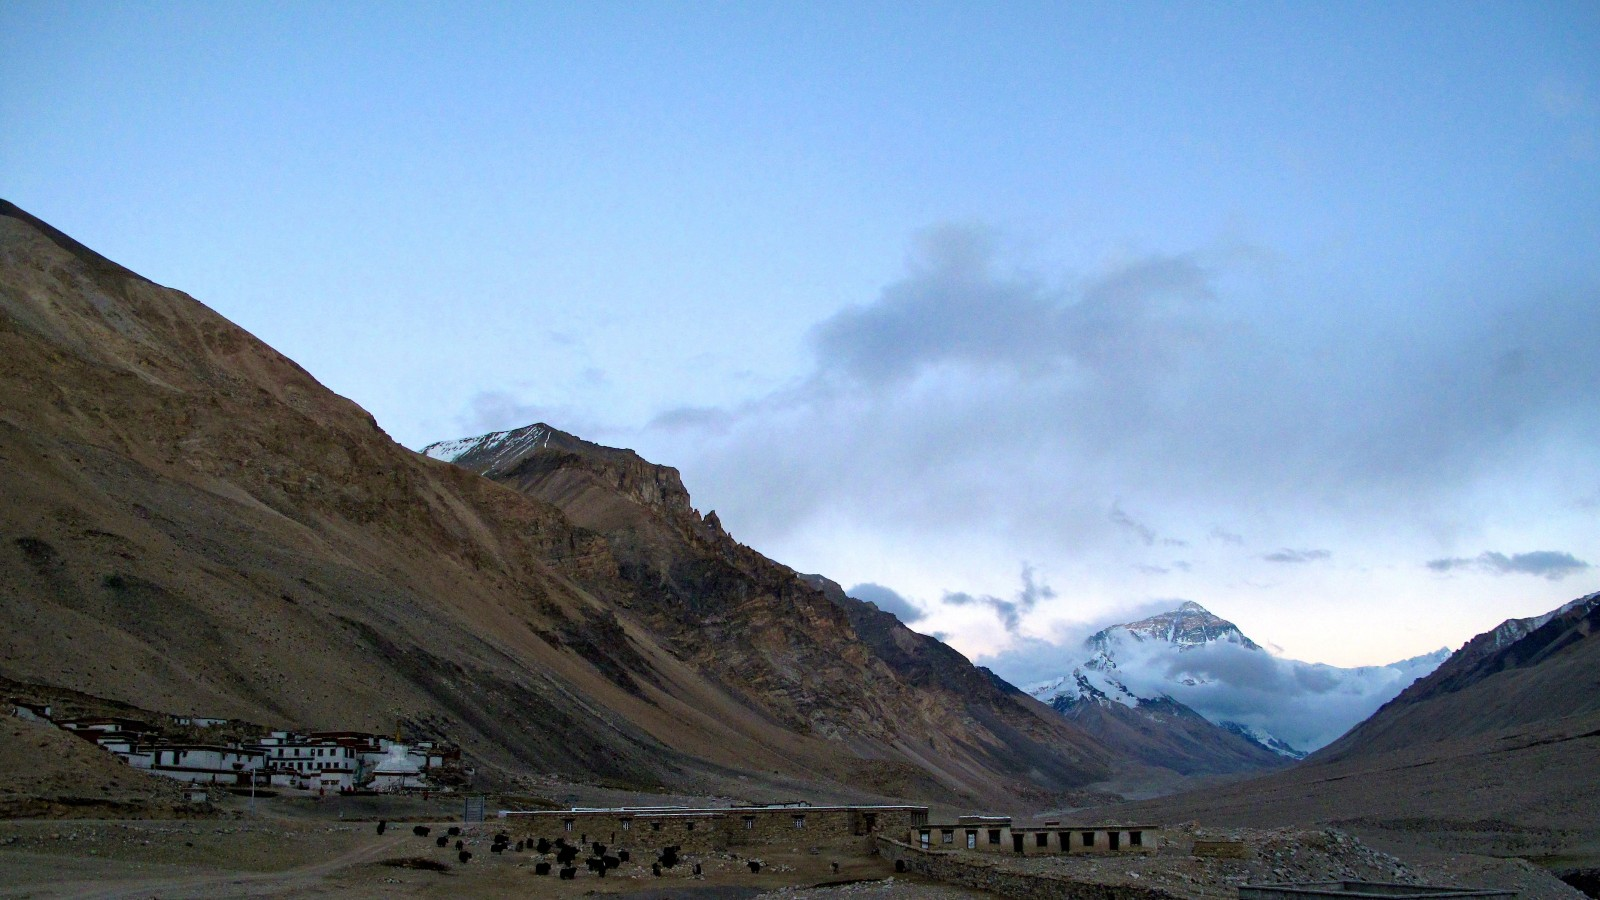 Sunset on Mt. Everest & Rombuk Monastery. Credit: Peter Lippert